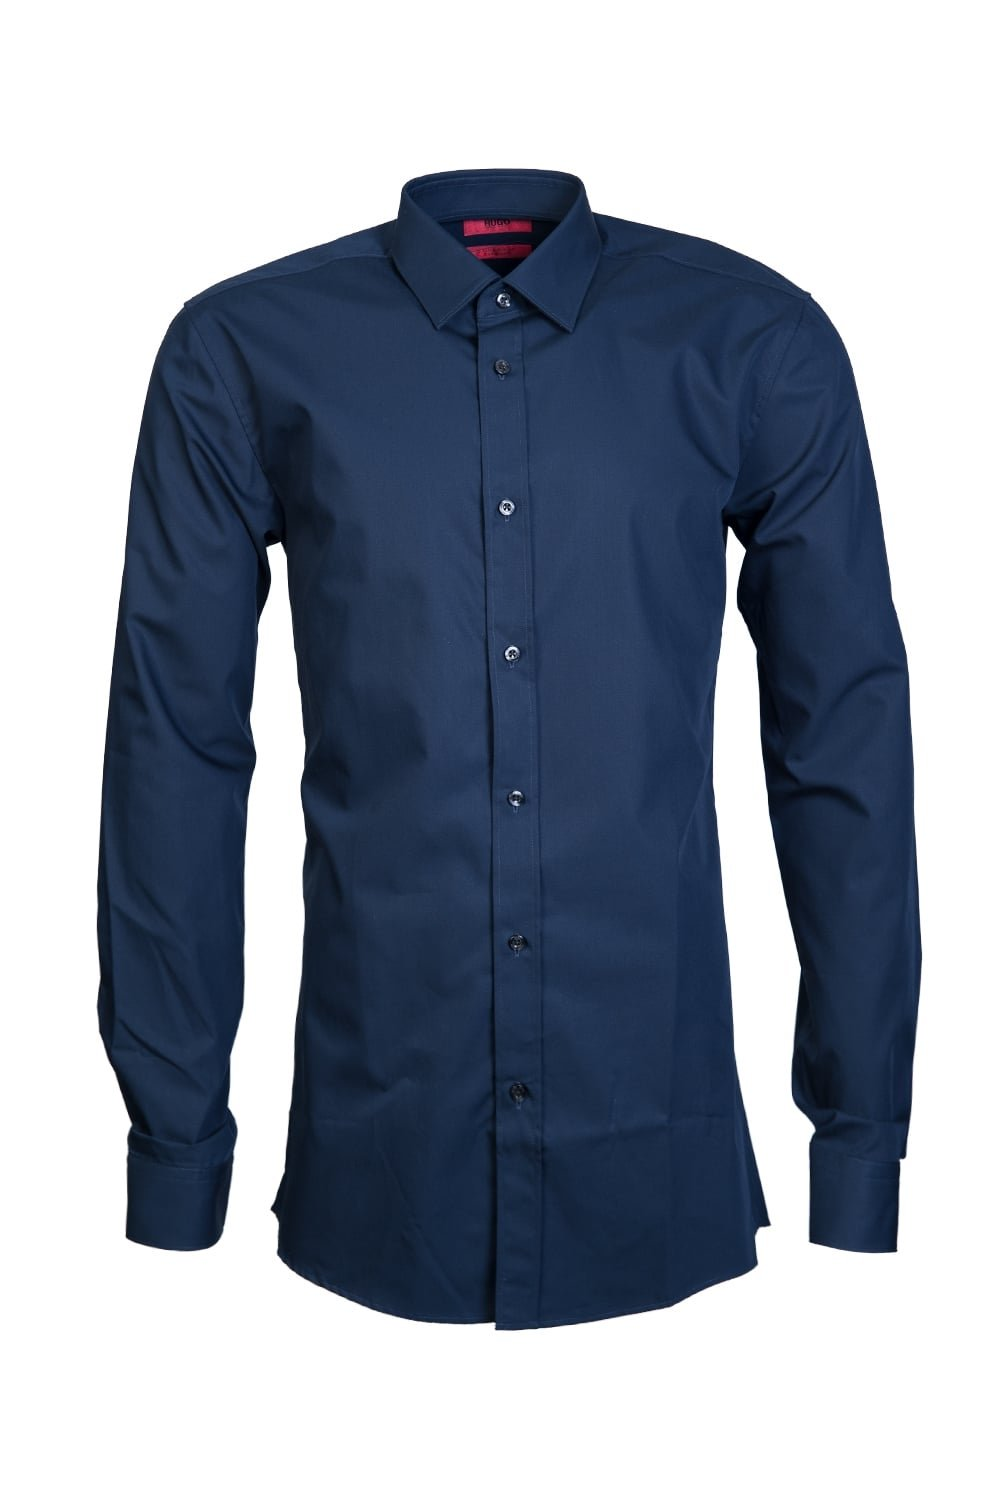 HUGO BOSS Mens Smart Shirt Elisha 01 50372533 Size 42 Blue